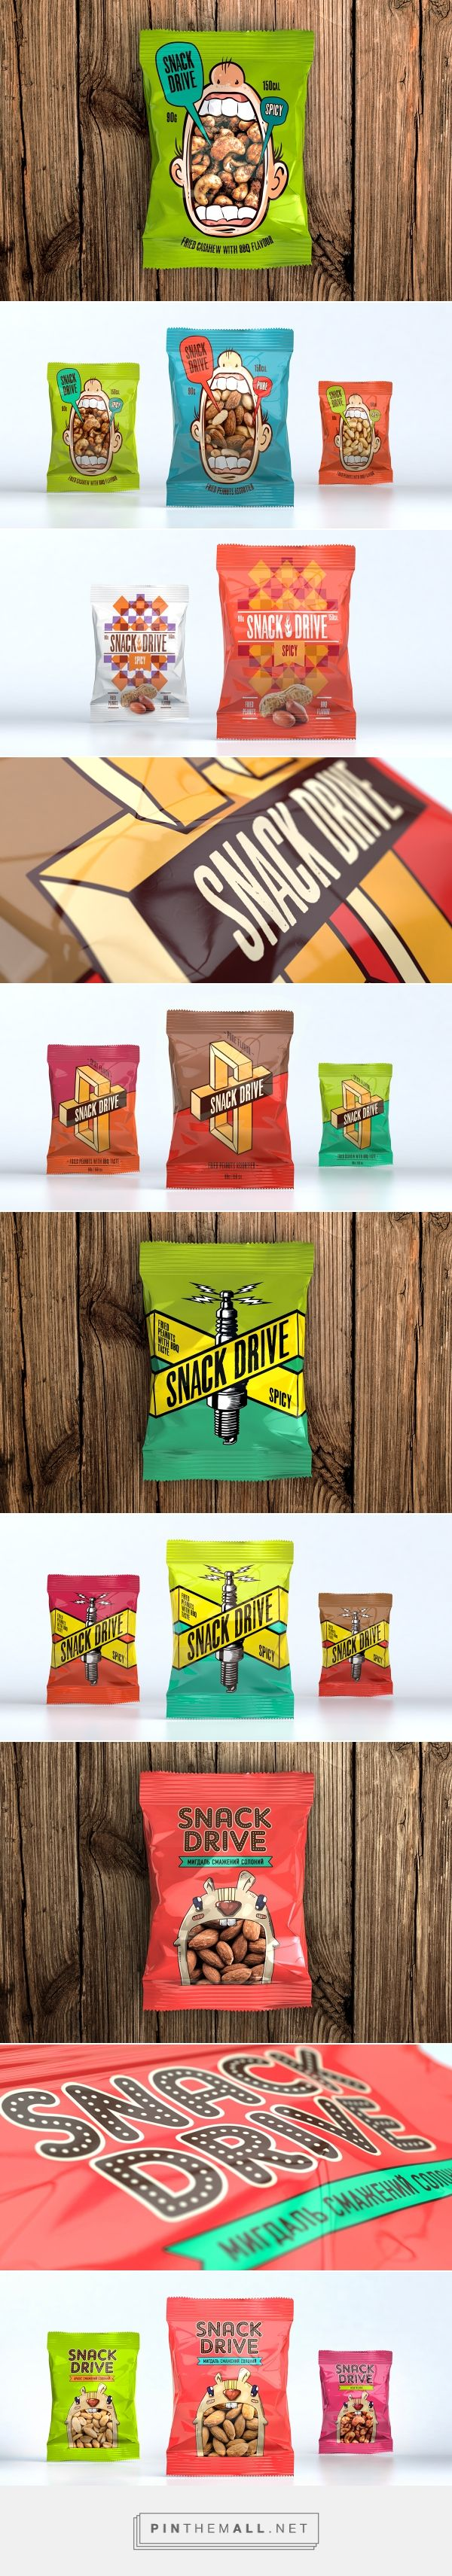 Snacks Packaging Pitch on Behance curated by Packaging Diva PD. Great collection of fun proposed snack packaging.